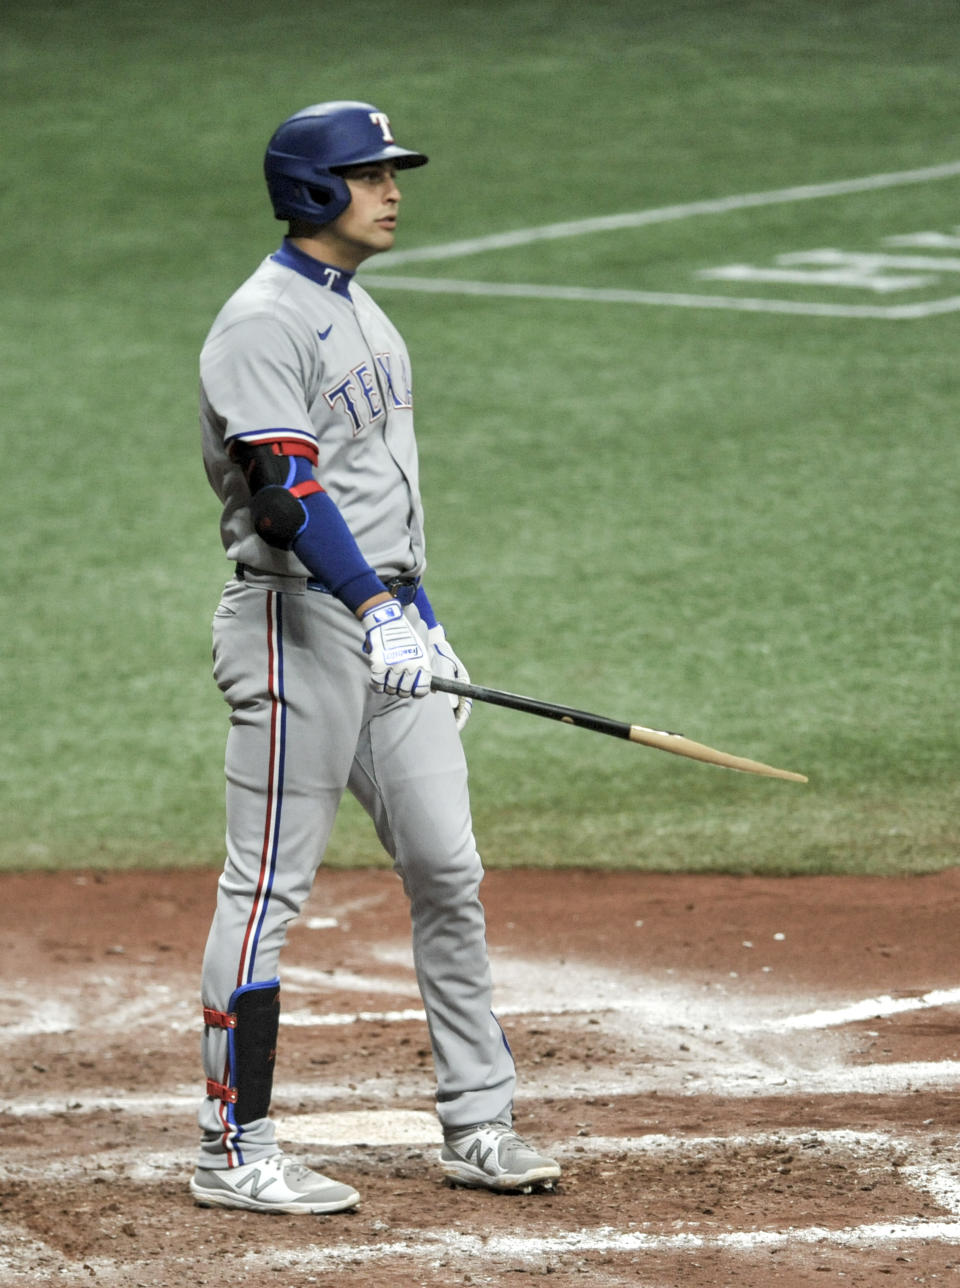 Texas Rangers' Nate Lowe hold his broken bat during the seventh inning of a baseball game against the Tampa Bay Rays Monday, April 12, 2021, in St. Petersburg, Fla. (AP Photo/Steve Nesius)